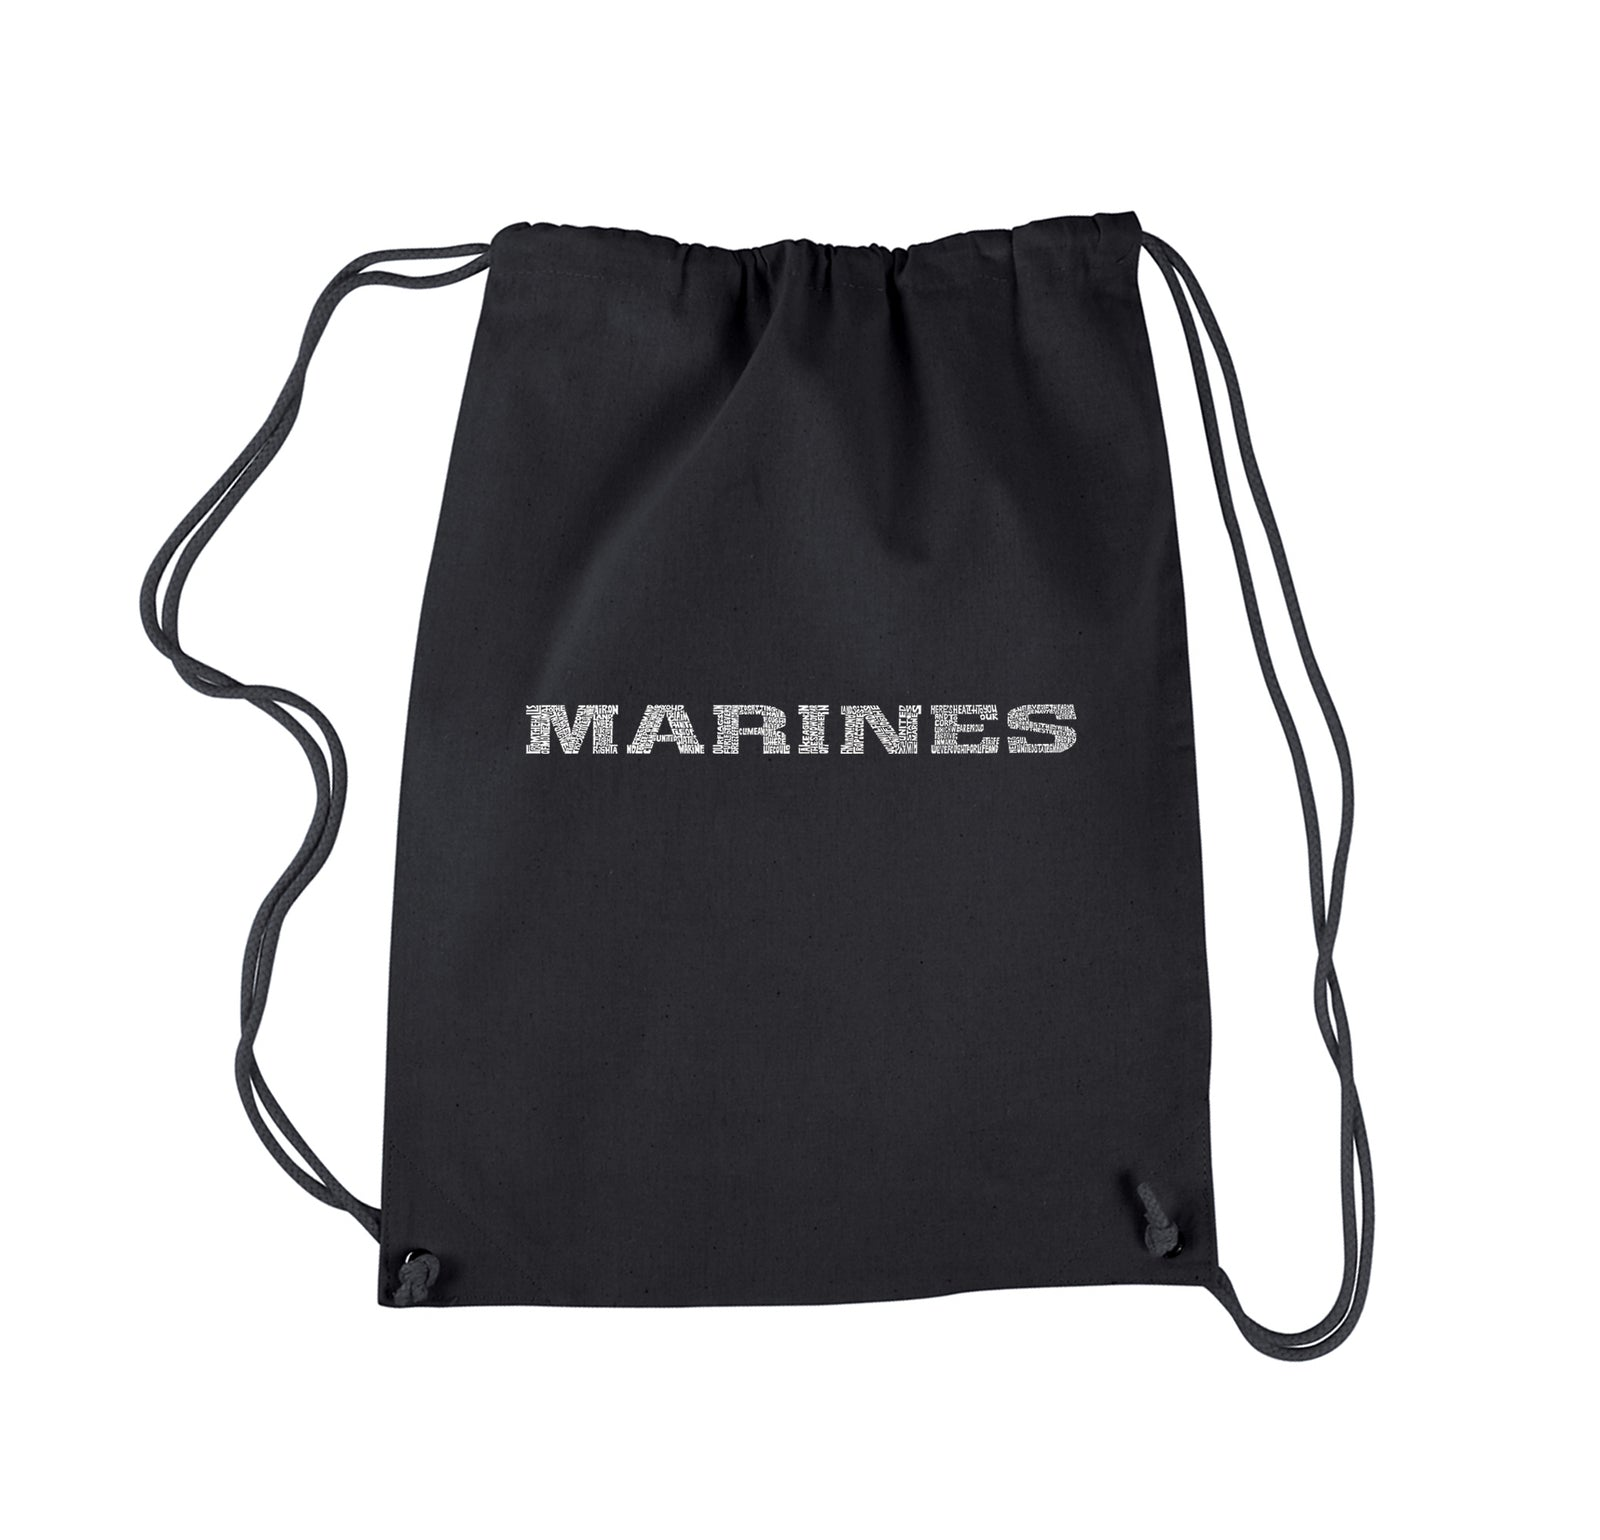 Drawstring Backpack - LYRICS TO THE MARINES HYMN